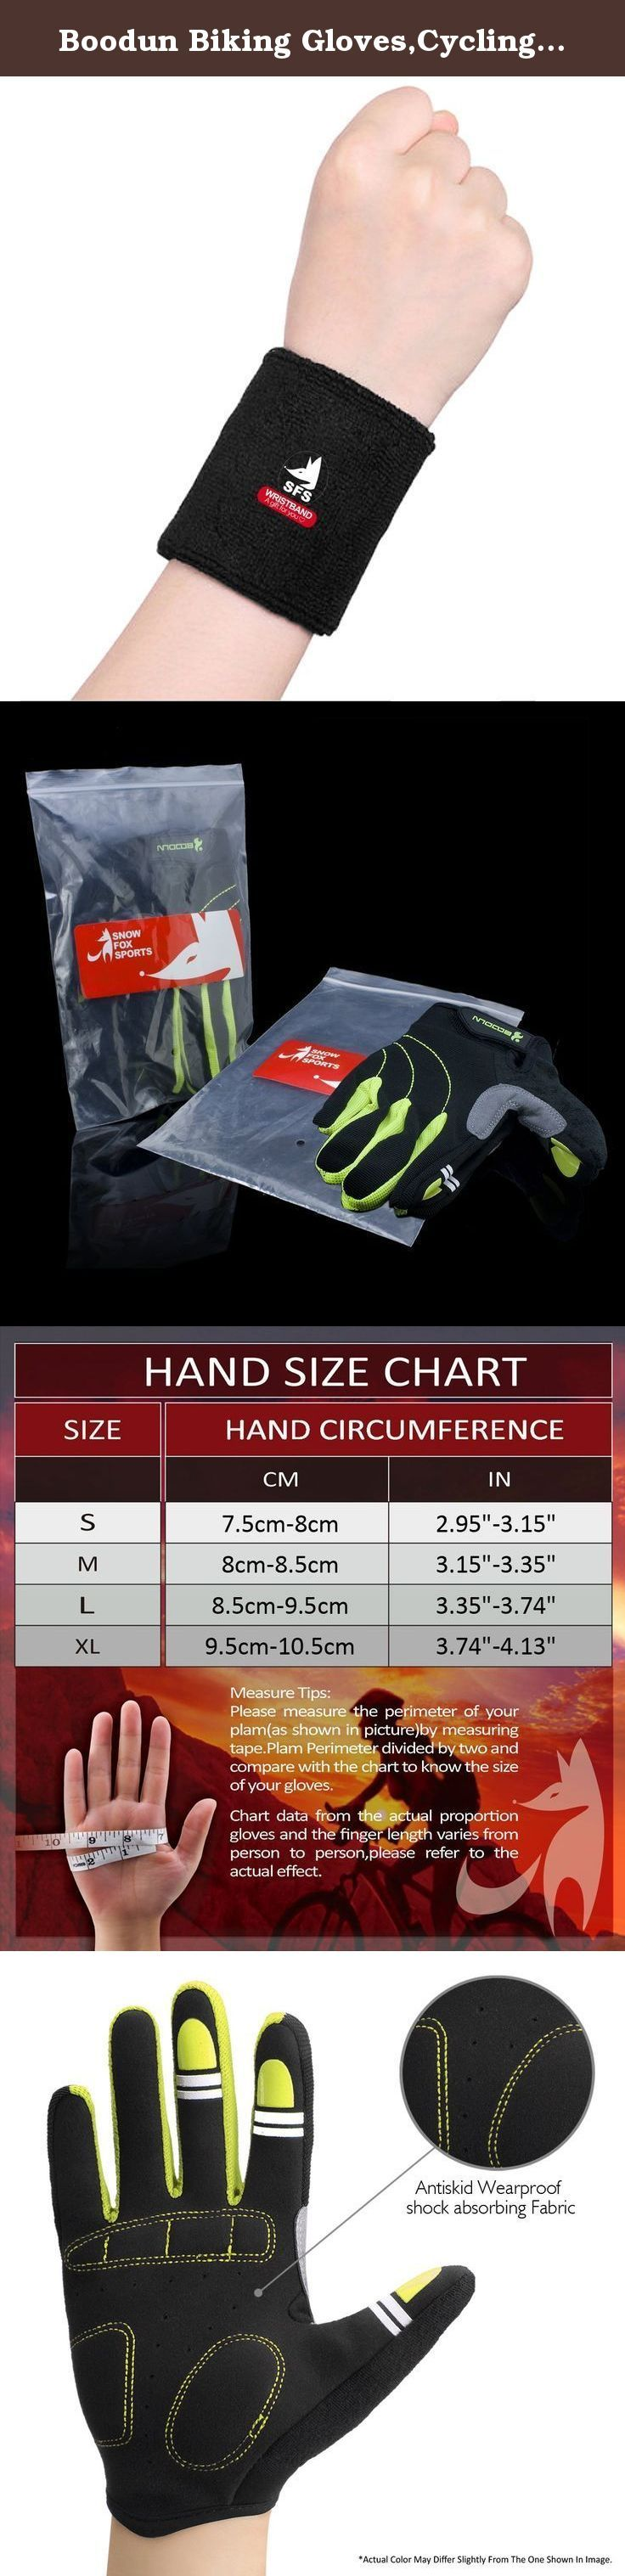 Boodun Biking Gloves,Cycling Gloves Wearproof Full Finger Antiskid Mountain Bike Gloves Road Racing Bicycle Gloves Riding Gloves. Biking Gloves Antiskid Cycling Mountain Bike Gloves Riding Training Running Work Gloves Product Warranty: Our gloves will be all shipped directly from Amazon's Warehouse sold by Snow Fox Sports Direct, which can ensure that you could receive the parcel safely and quickly. We promise a 30-Day Money Back Product Quality Guarantee (caused by non-artificial...